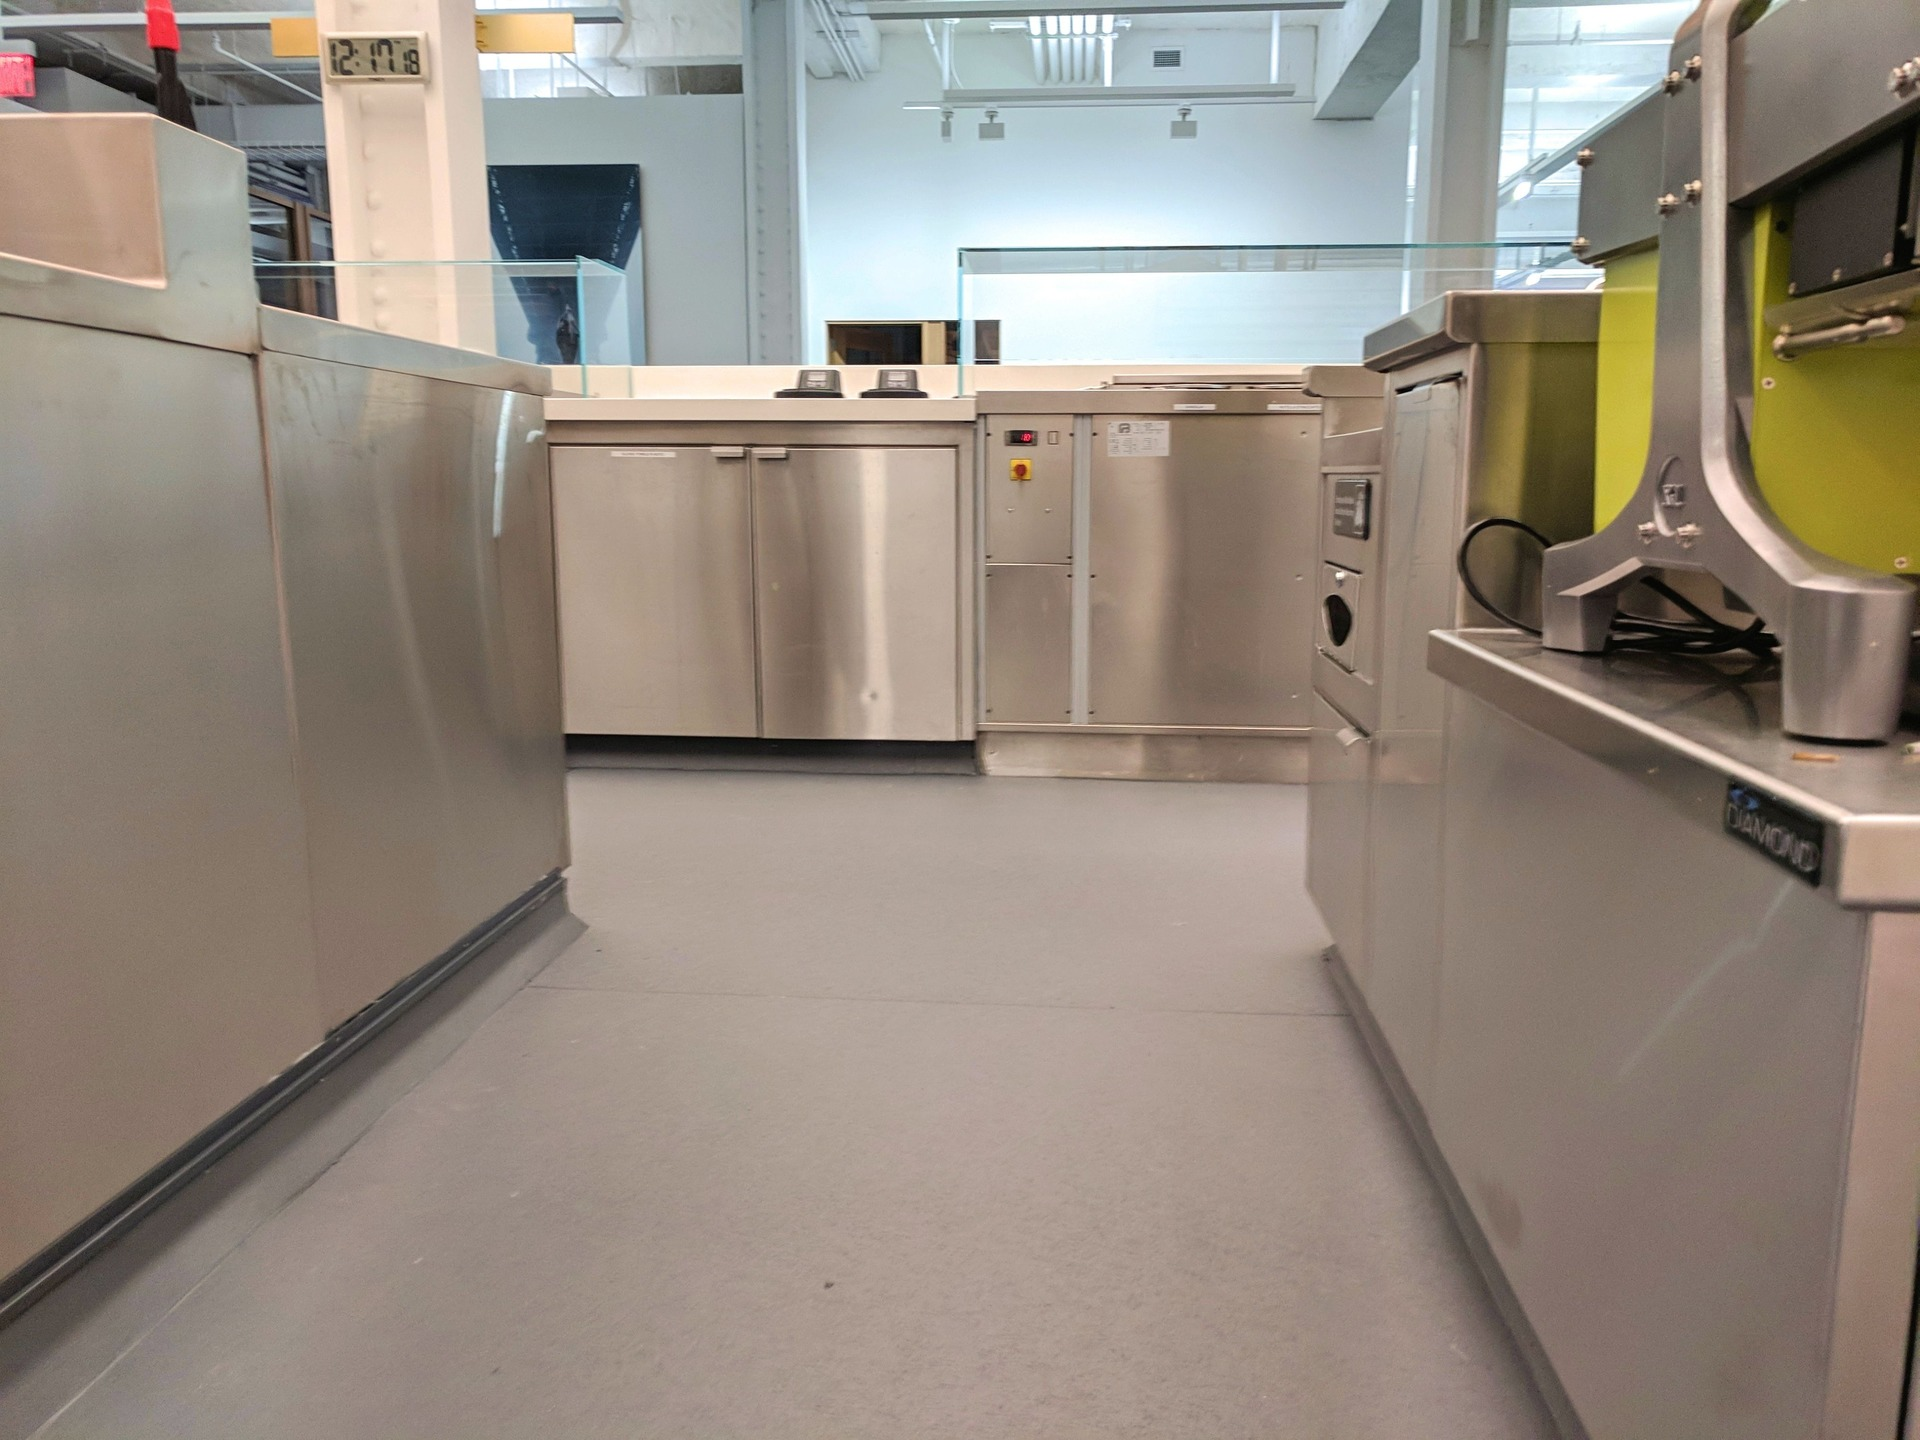 Eco-Grip® is a revolutionary flooring product that is utilized in areas that demand a safe, waterproof, slip-resistant environment.